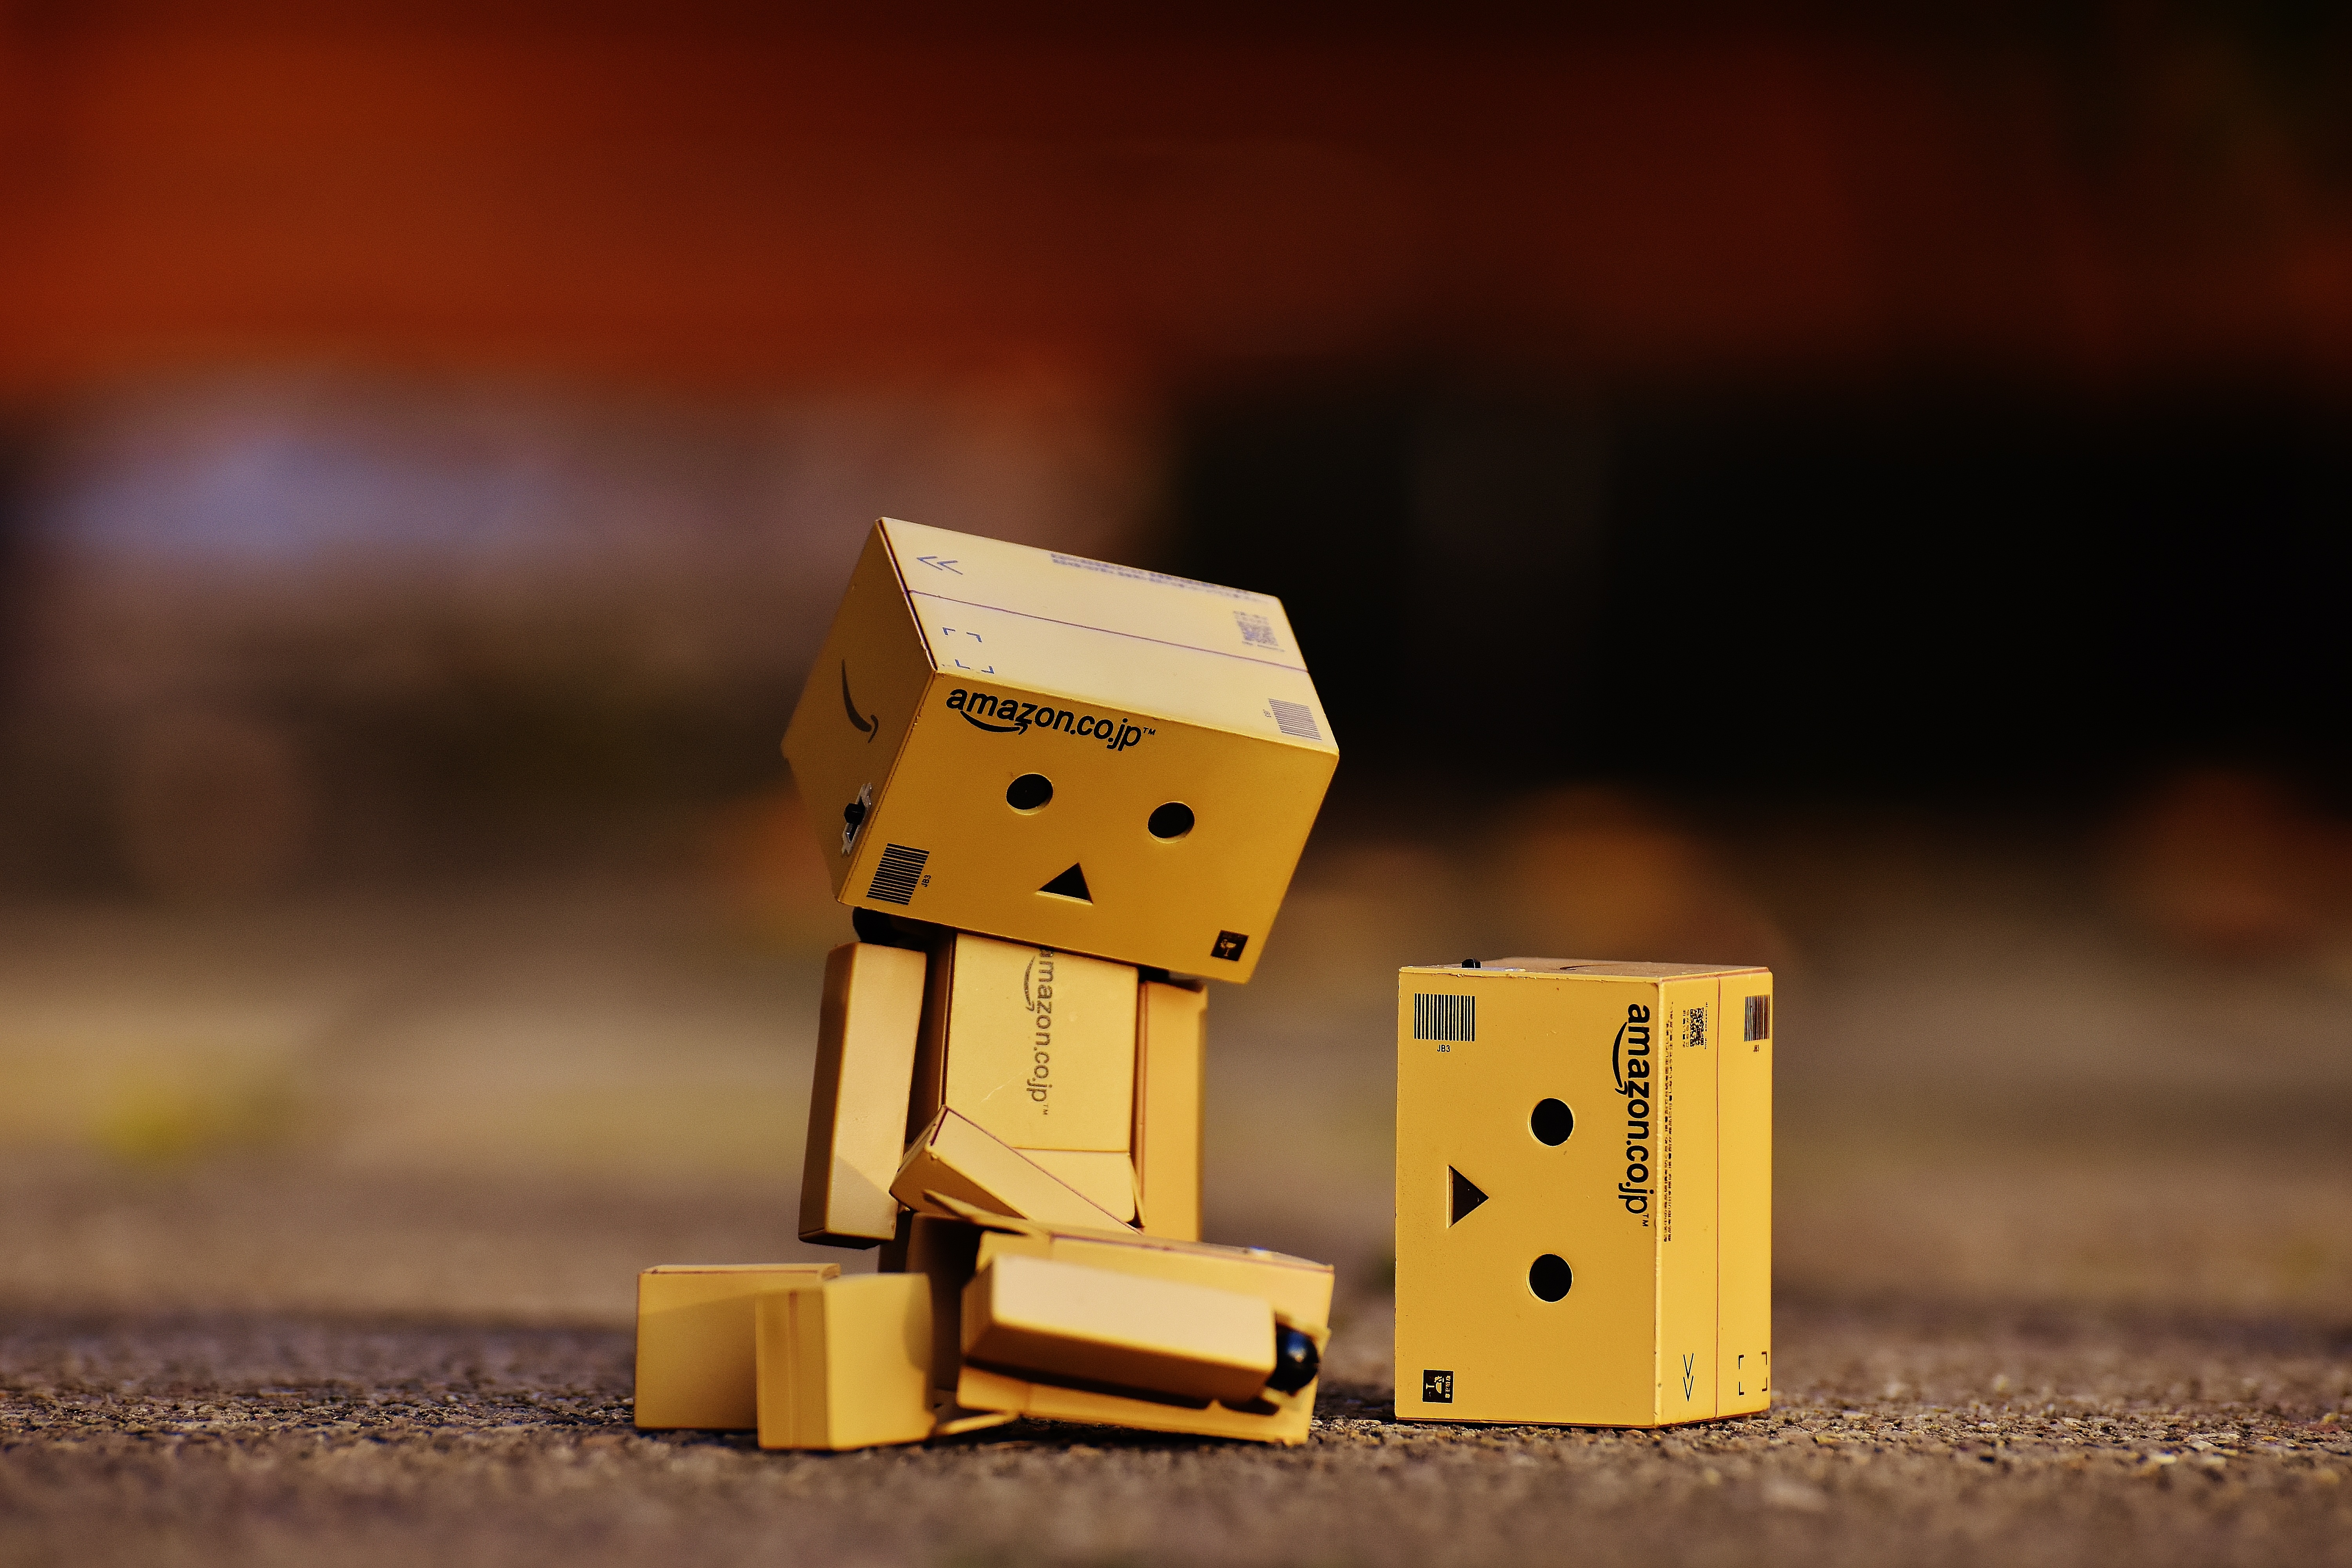 /upl/pictures/Timokhina/wood-number-cute-broken-yellow-death-toy-sad-figure-friends-funny-figures-danbo-miss-grieve-1169004.jpg